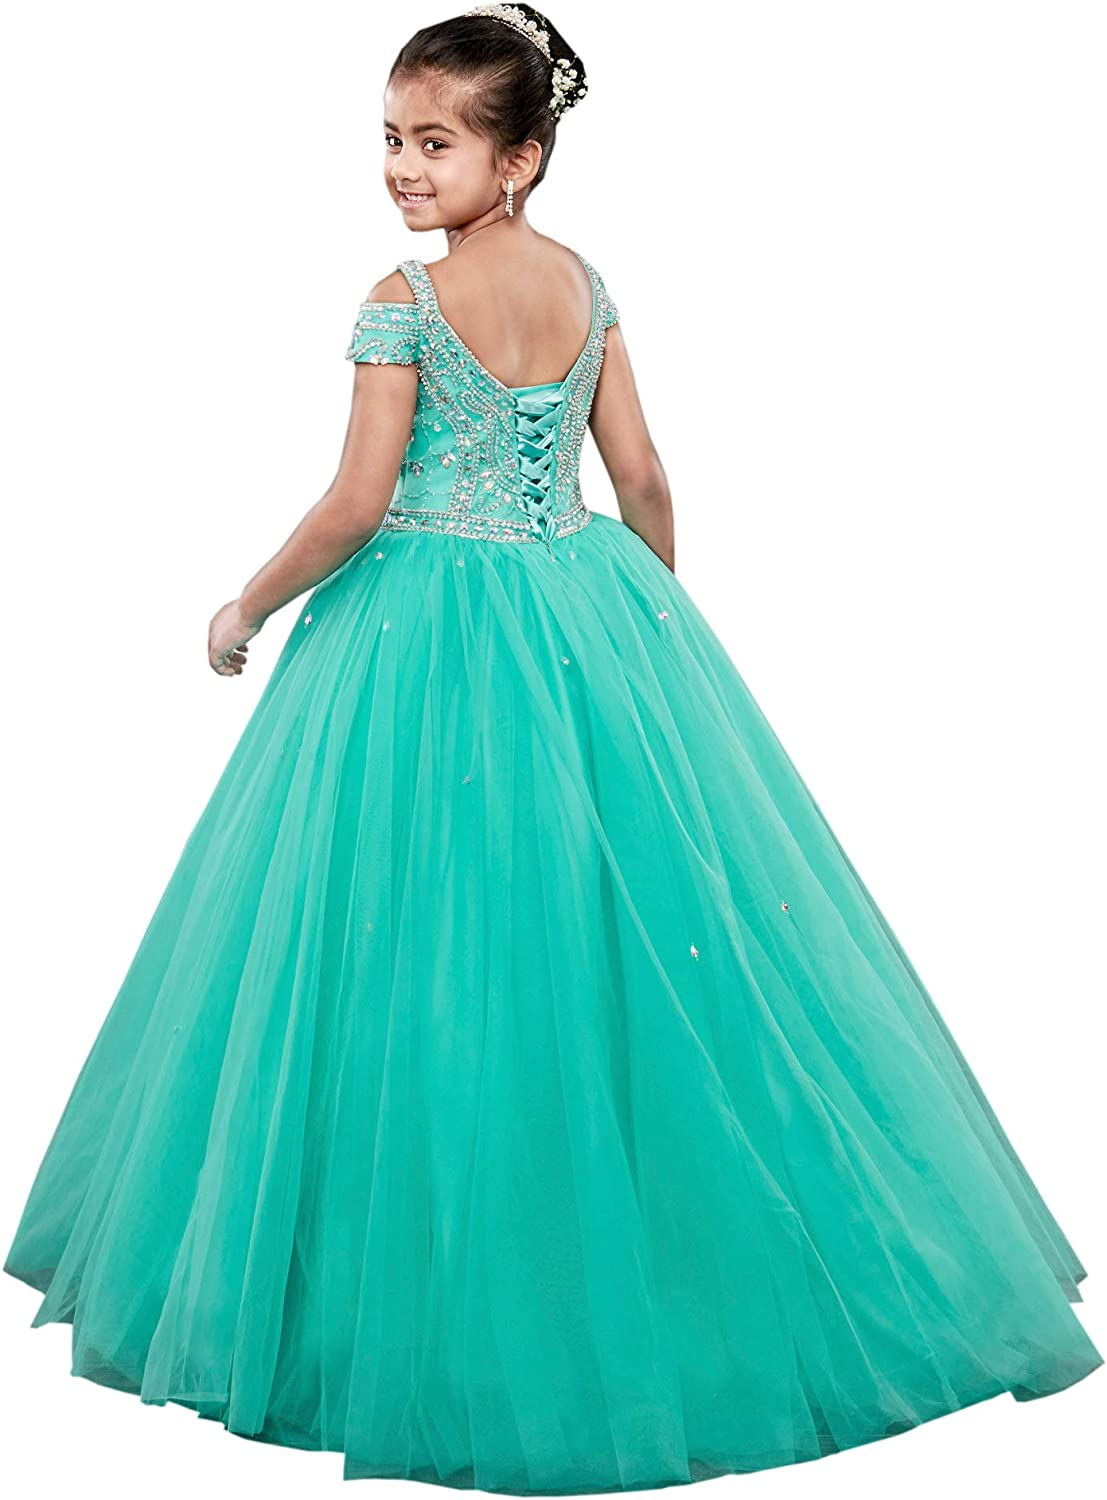 DommyDesign Bling Pageant Dress Cold Shoulder Rhinestones Princess with Sleeves Beaded Formal Prom Dress for Kids 2019